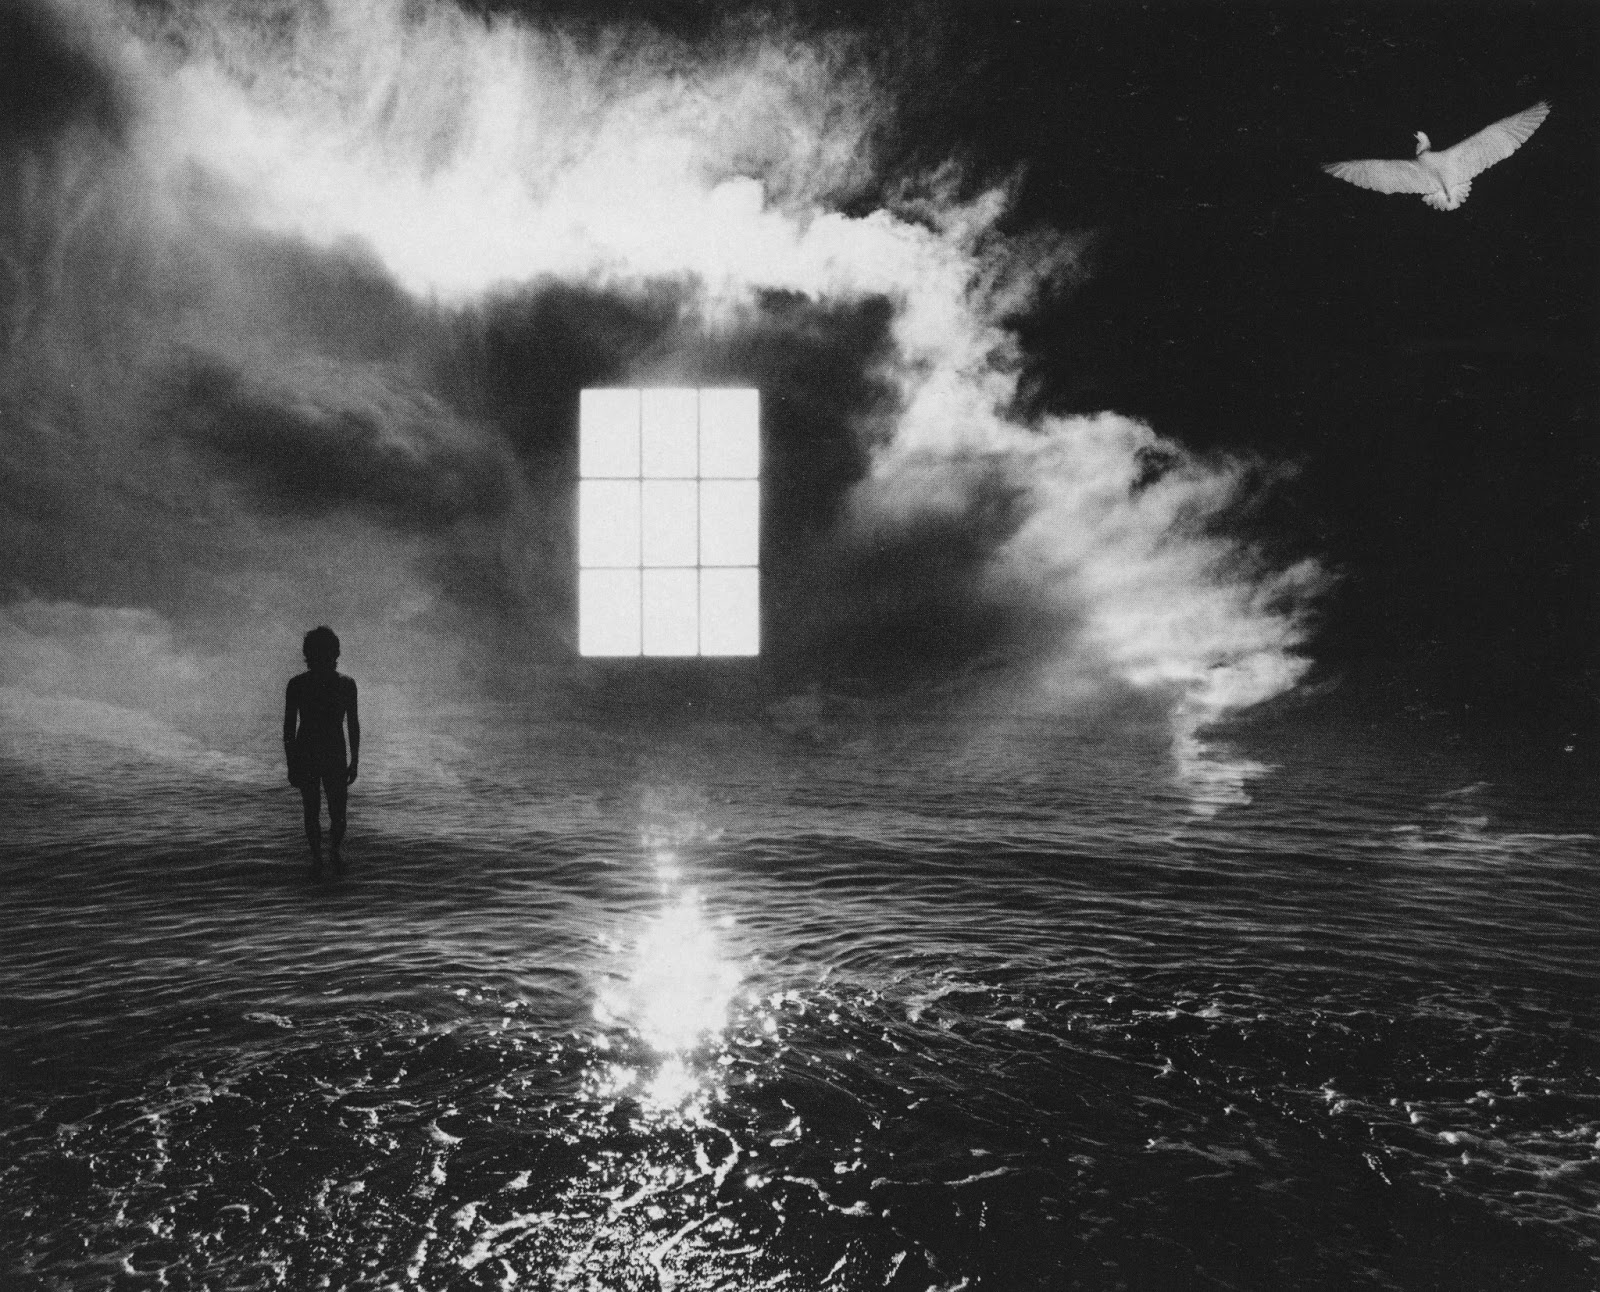 jerry uelsmann biography Jerry n uelsmann (born june 11, 1934) is an american photographer, and was the forerunner of photomontage in the 20th century in america.